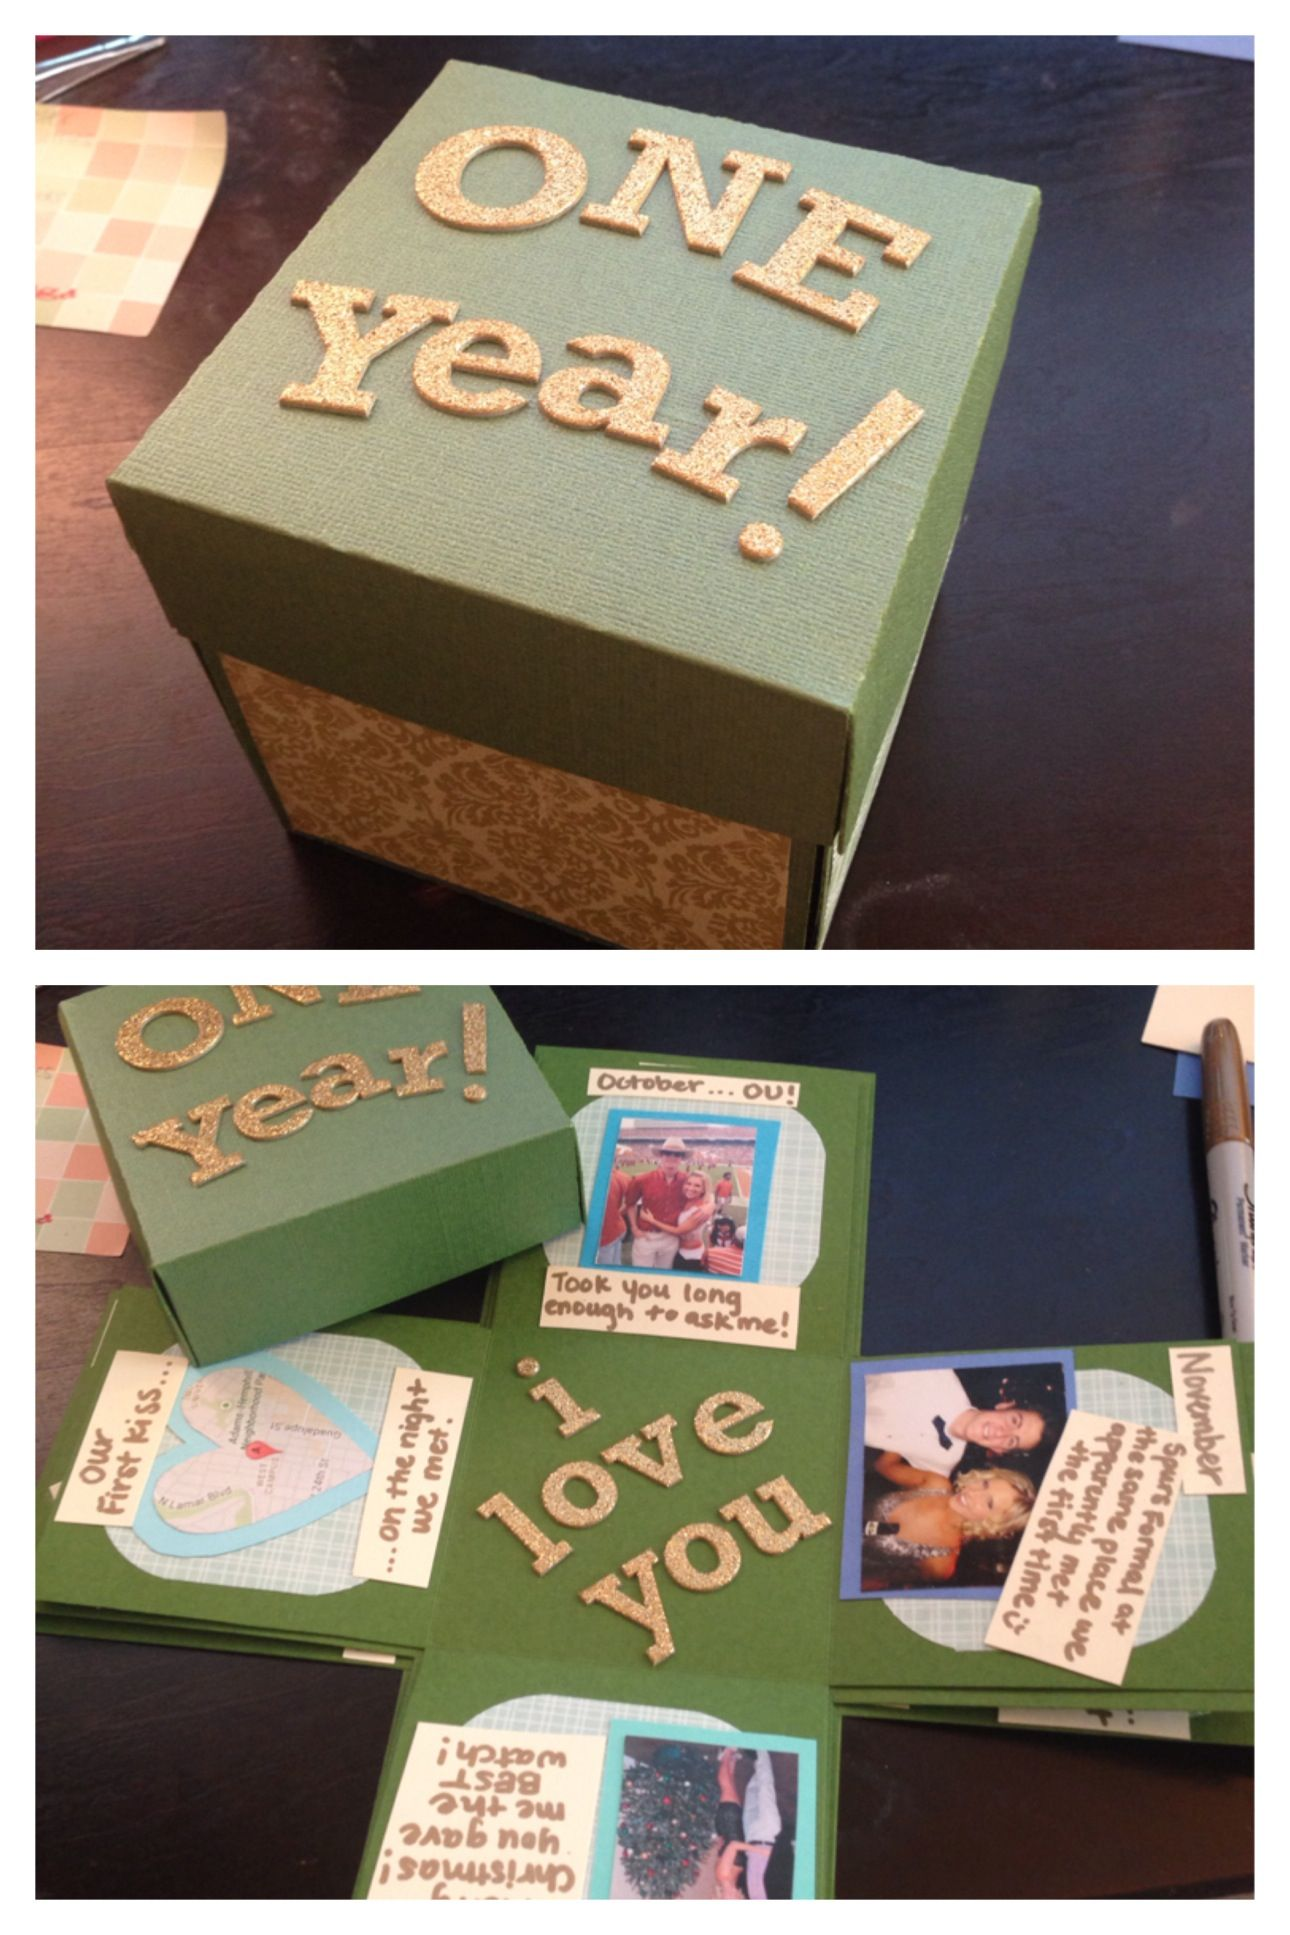 Anniversary Gifts on Pinterest Boyfriends 21st Birthday, Homemade ...